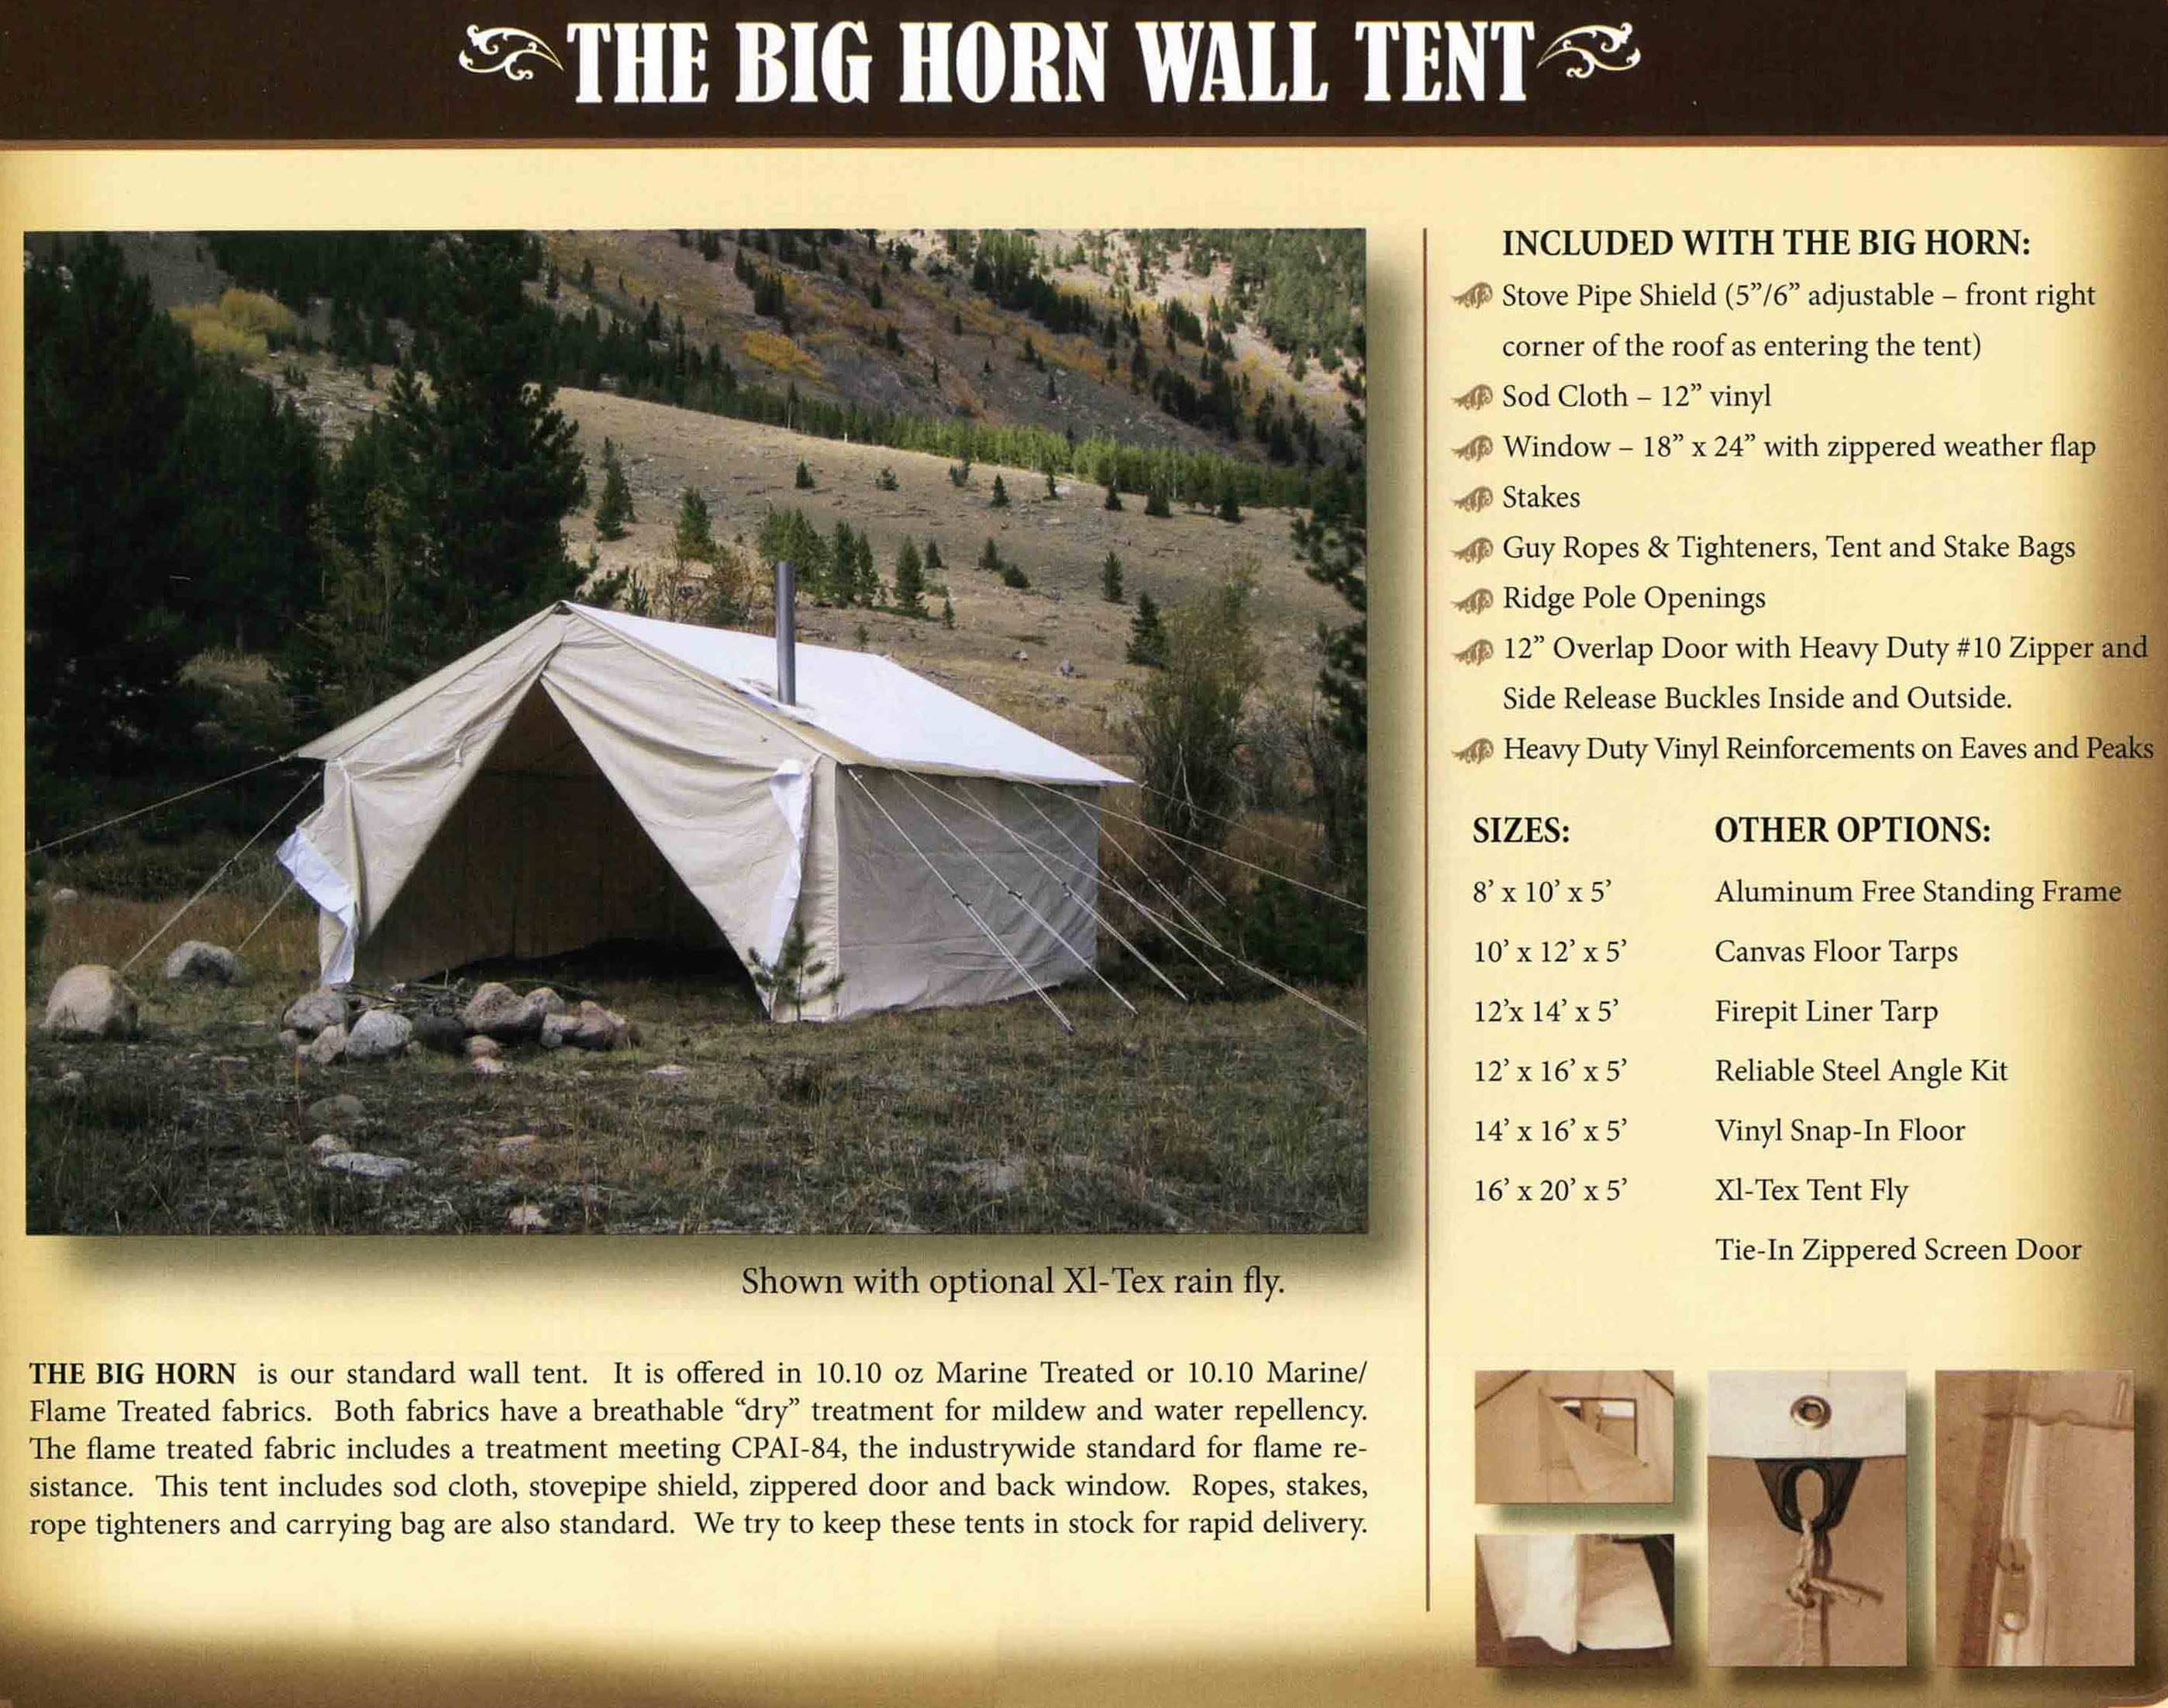 click here to inlarge Bighorn tent options. xxxxxxxxxxxxxxxxxxxxxxxxxxxxxxxxxxxxxxxxxxxxxxxxxxx & Moab Outback Wall tents for saleBig Horn Wall Tent